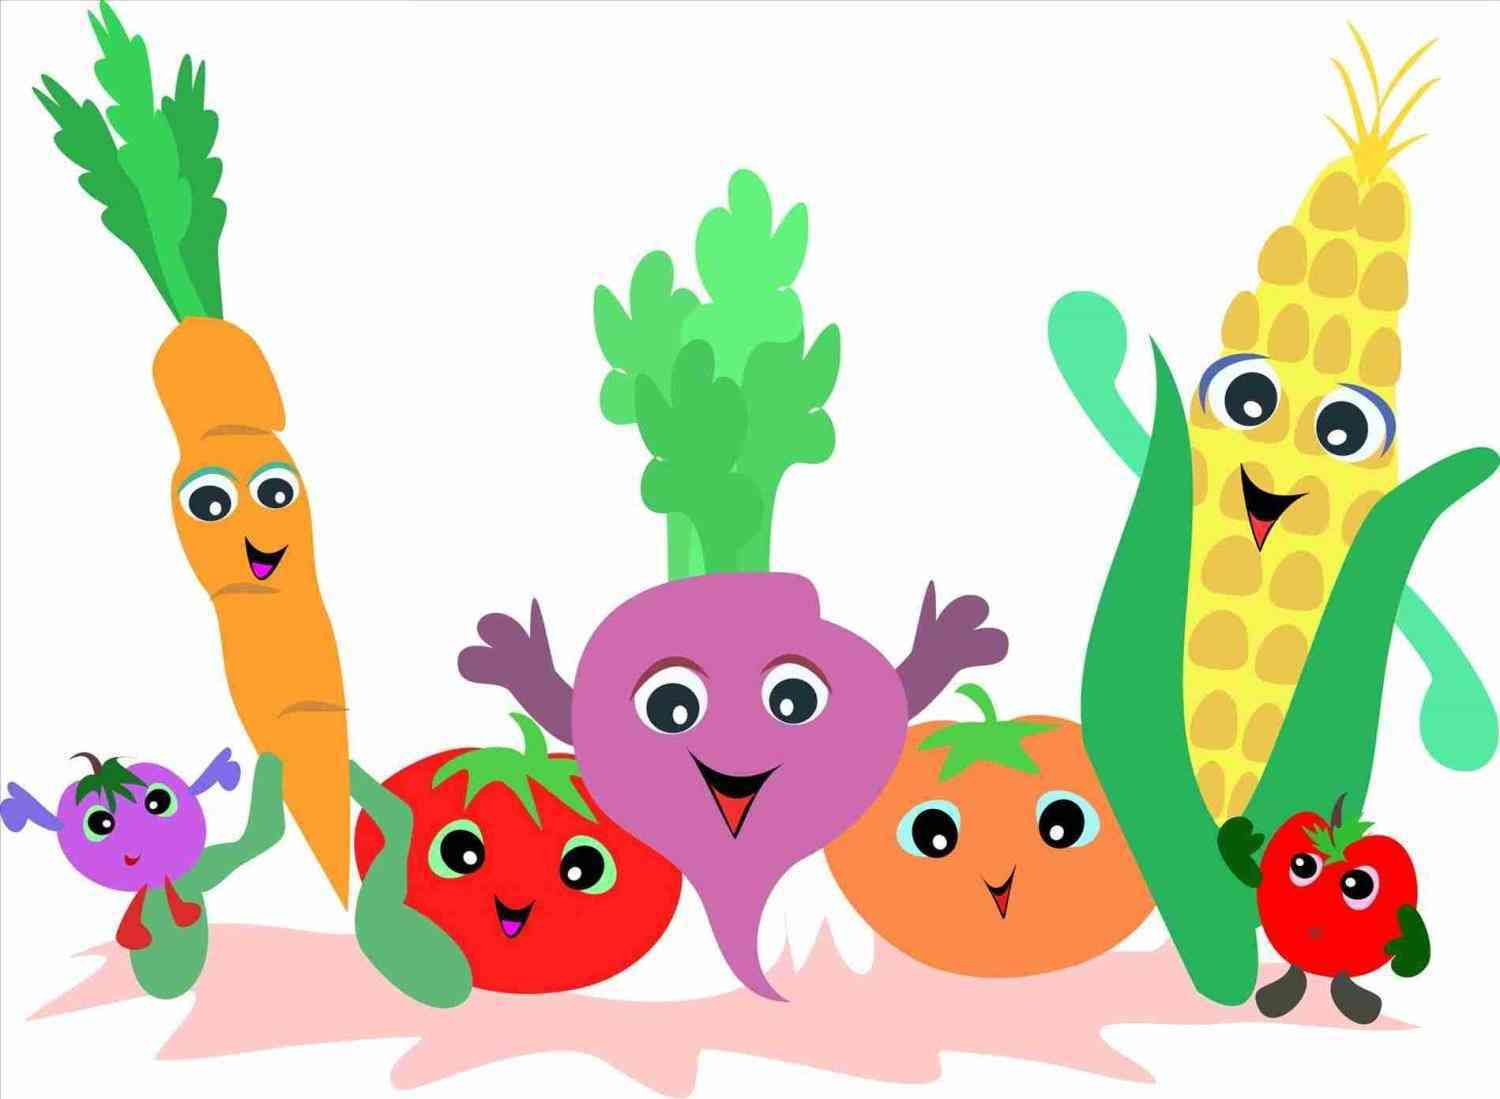 vegetable garden clipart at getdrawings com free for personal use rh getdrawings com vegetable clipart png vegetables clip art free download